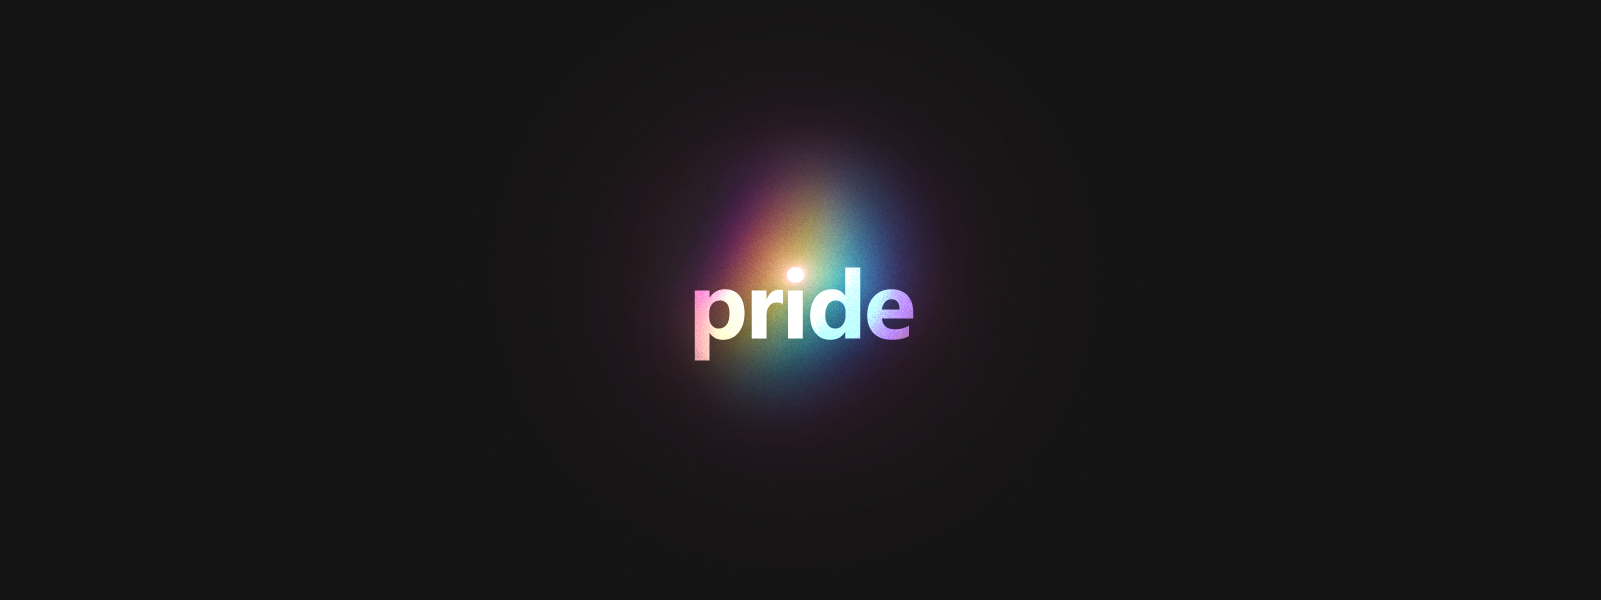 Image of Pride logo with a rainbow glow applied to it